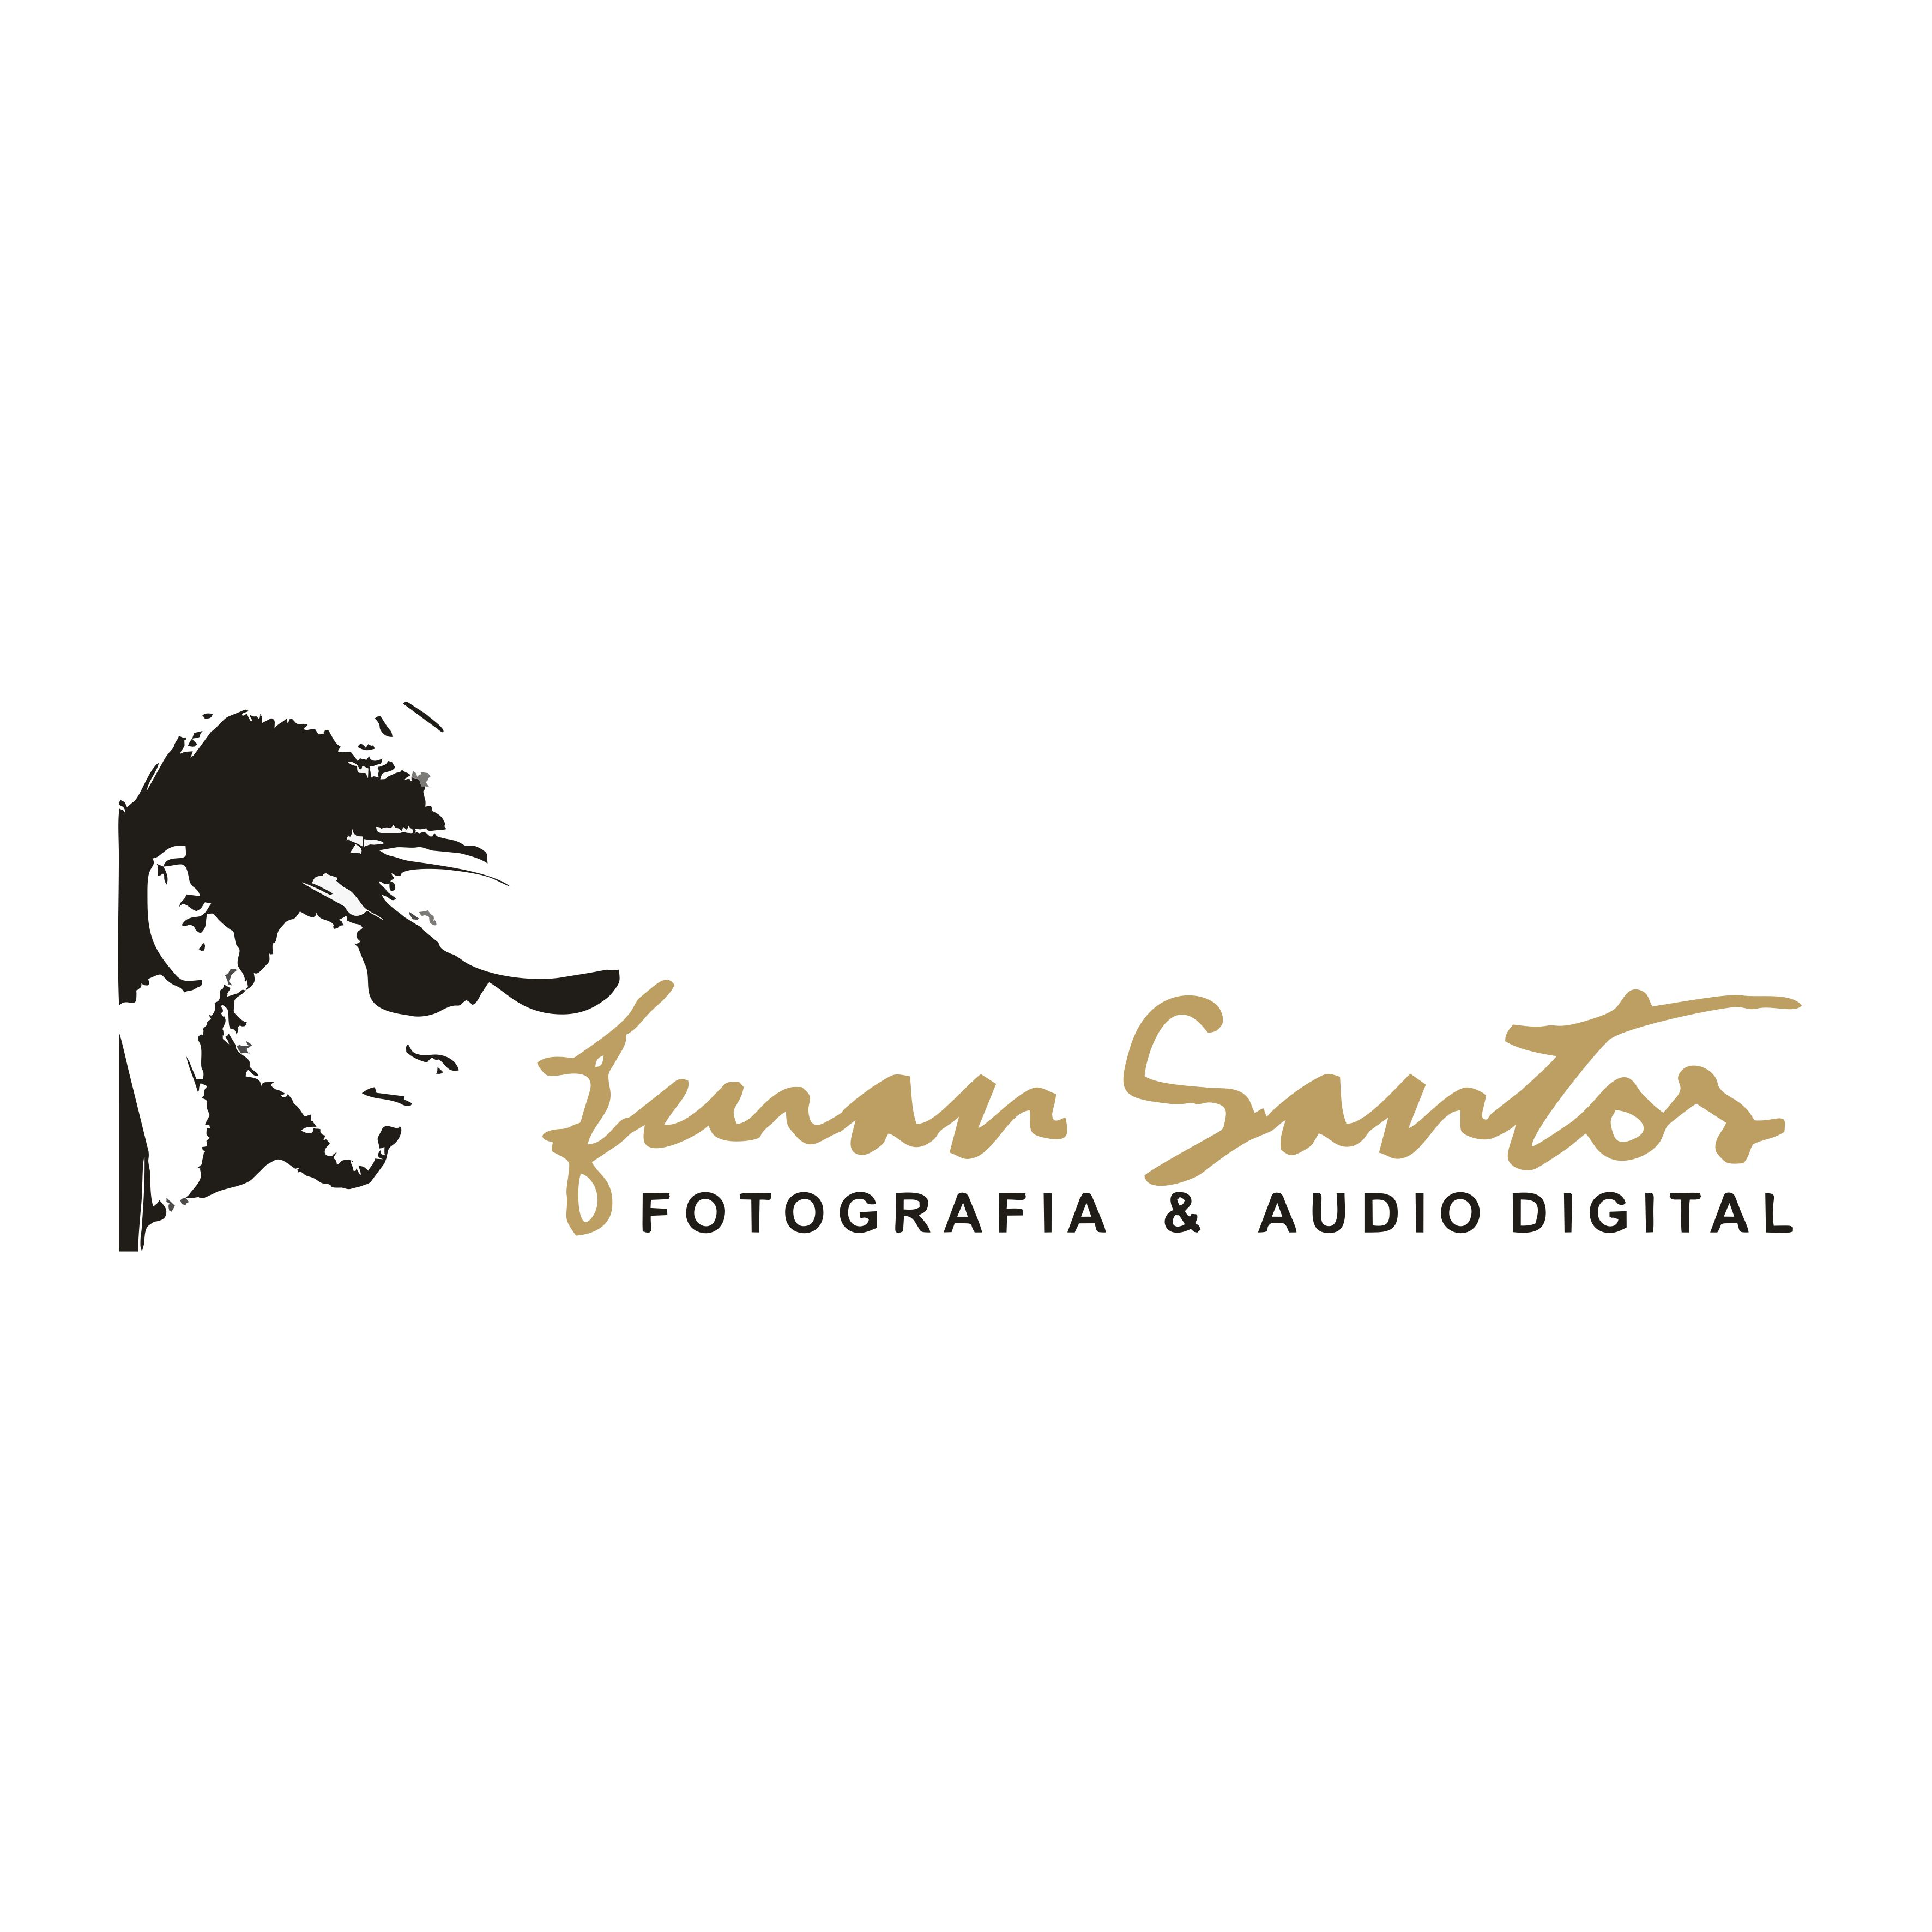 Juran Santos